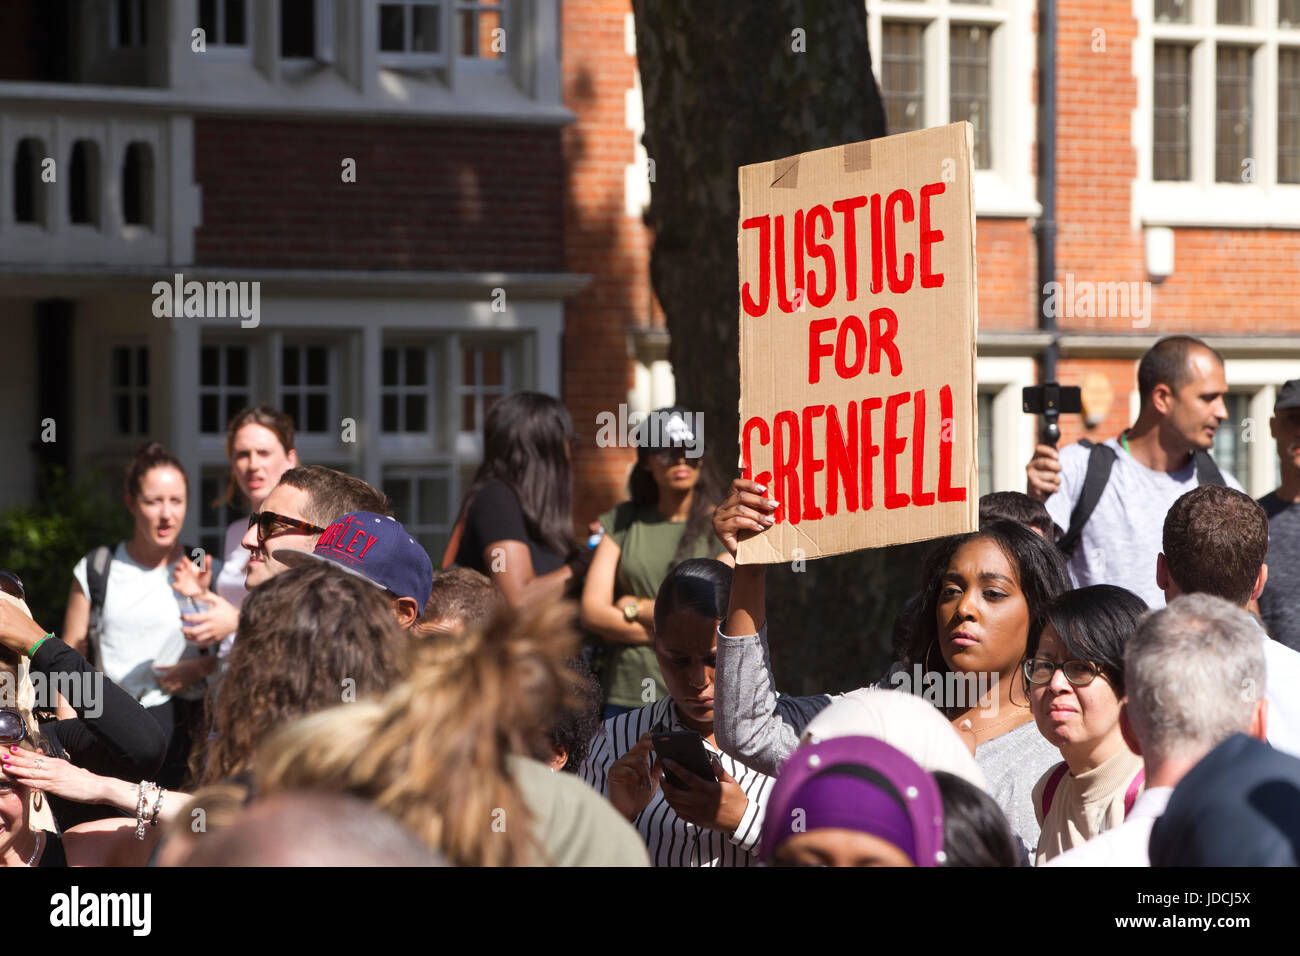 Grenfell Tower protest movement, Grenfell Tower fire disaster, outside Kensington Town Hall, West London, UK - Stock Image